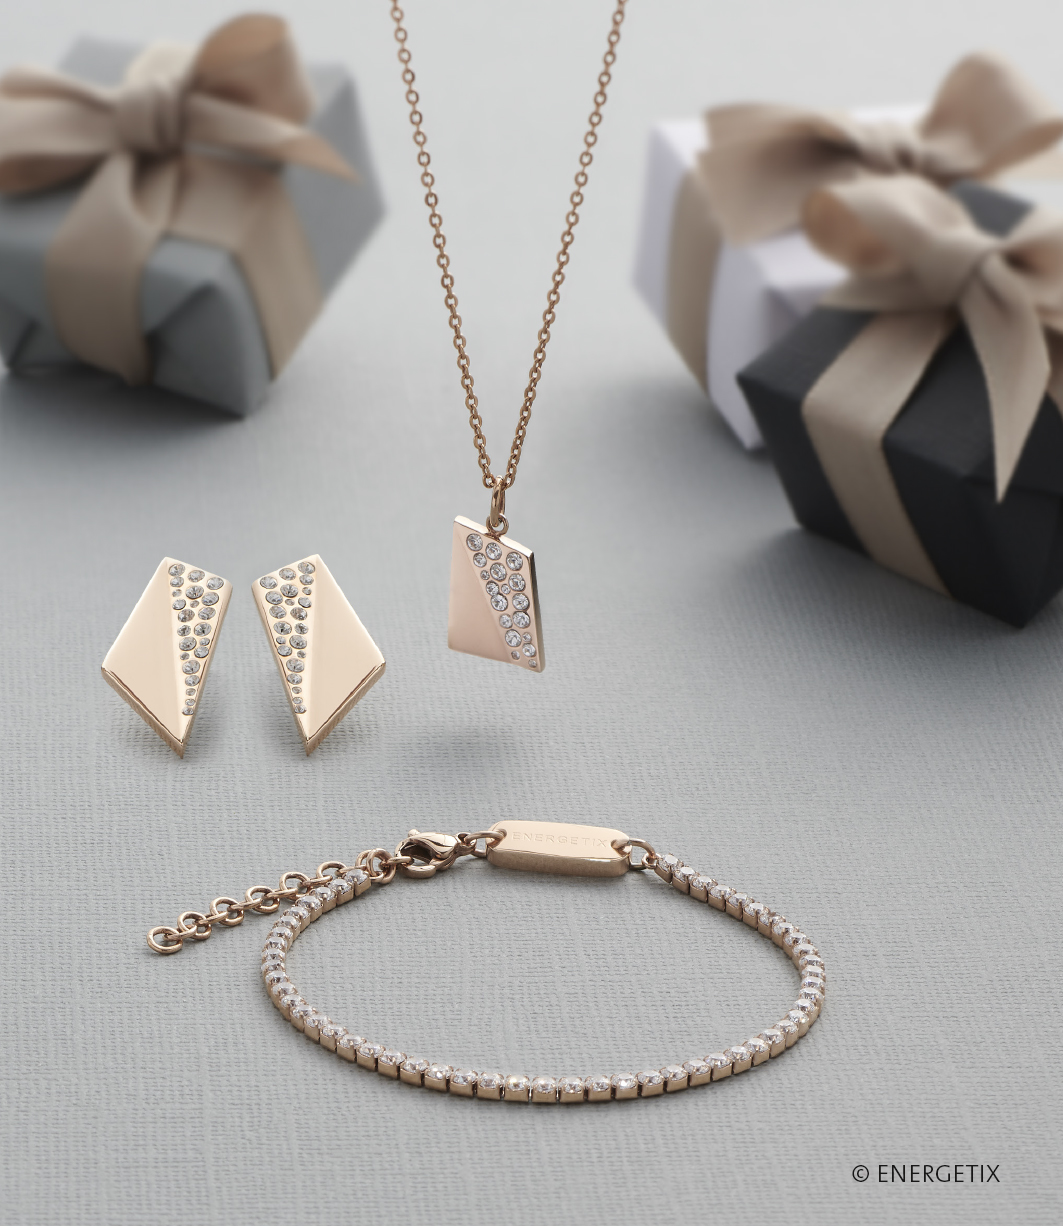 Large gold quadrilateral ear studs with triangle section encrusted with crystals, next to hanging pendant of matching design. Laying on the grey tablecloth in front is a magnetic bracelet of crystal links. Small gift boxes are scattered in the background